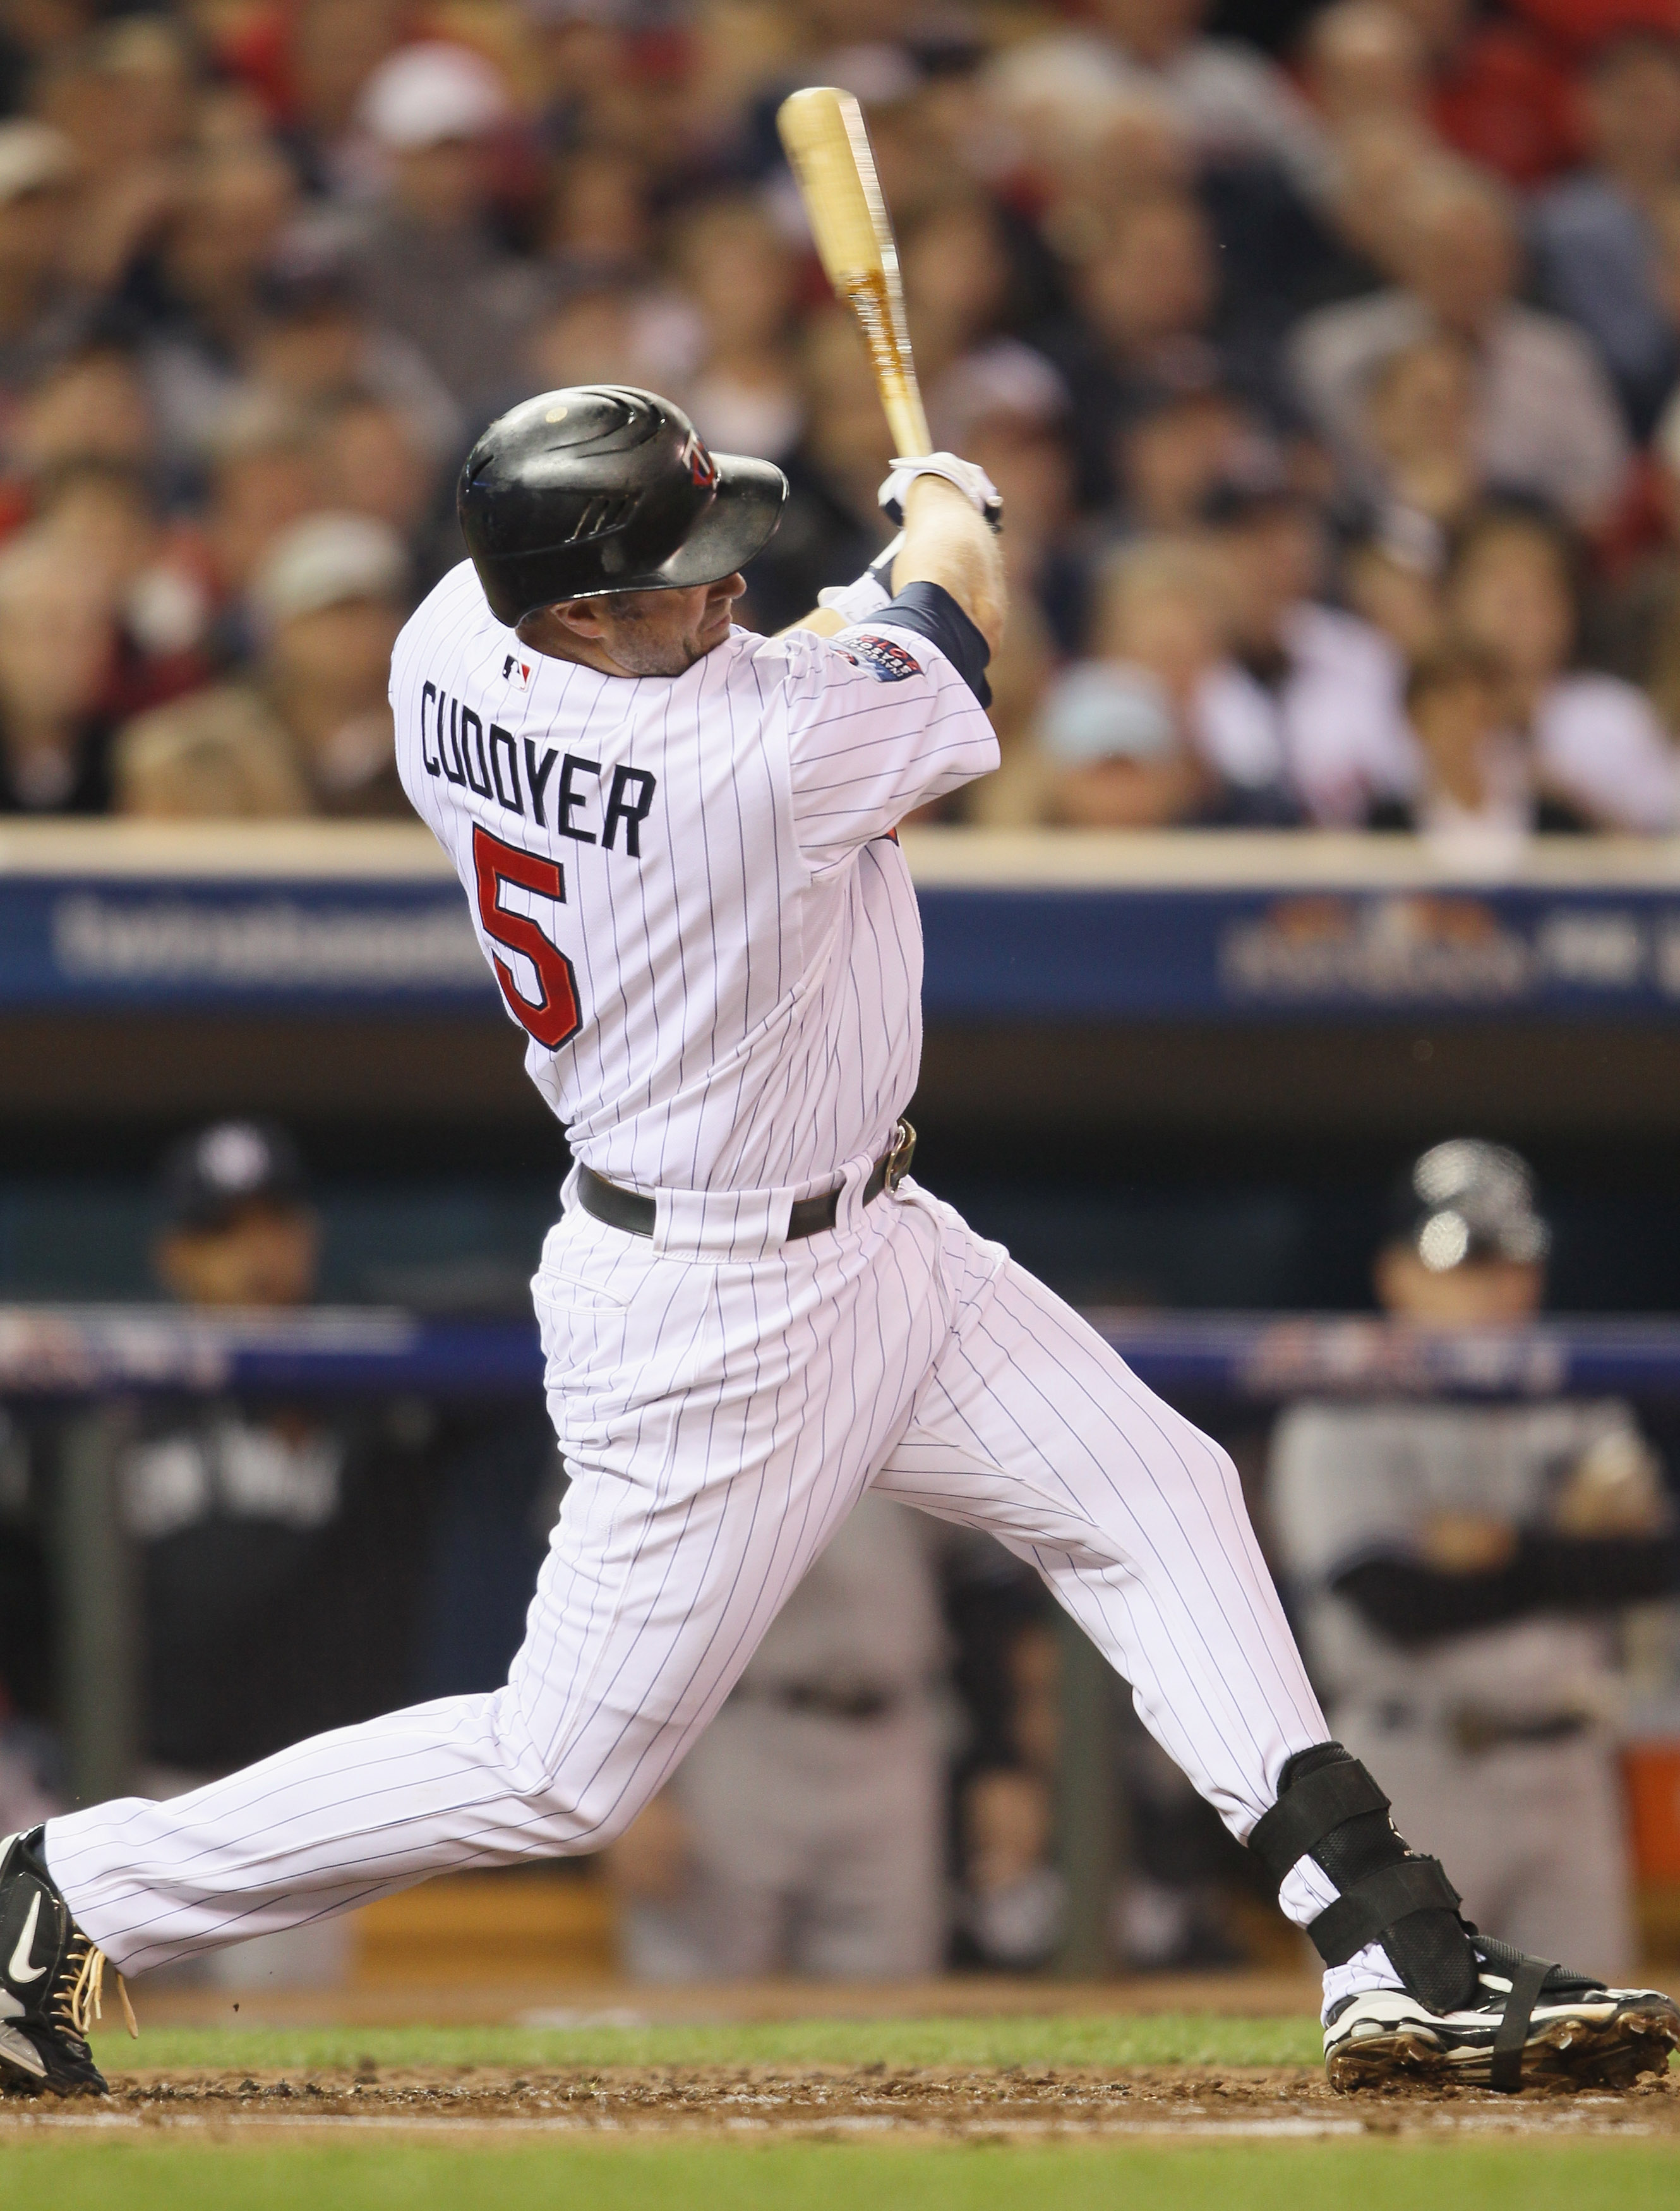 MINNEAPOLIS - OCTOBER 06:  Michael Cuddyer #5 of the Minnesota Twins hits a two run homer in the second inning against the New York Yankees during game one of the ALDS on October 6, 2010 at Target Field in Minneapolis, Minnesota.  (Photo by Elsa/Getty Ima